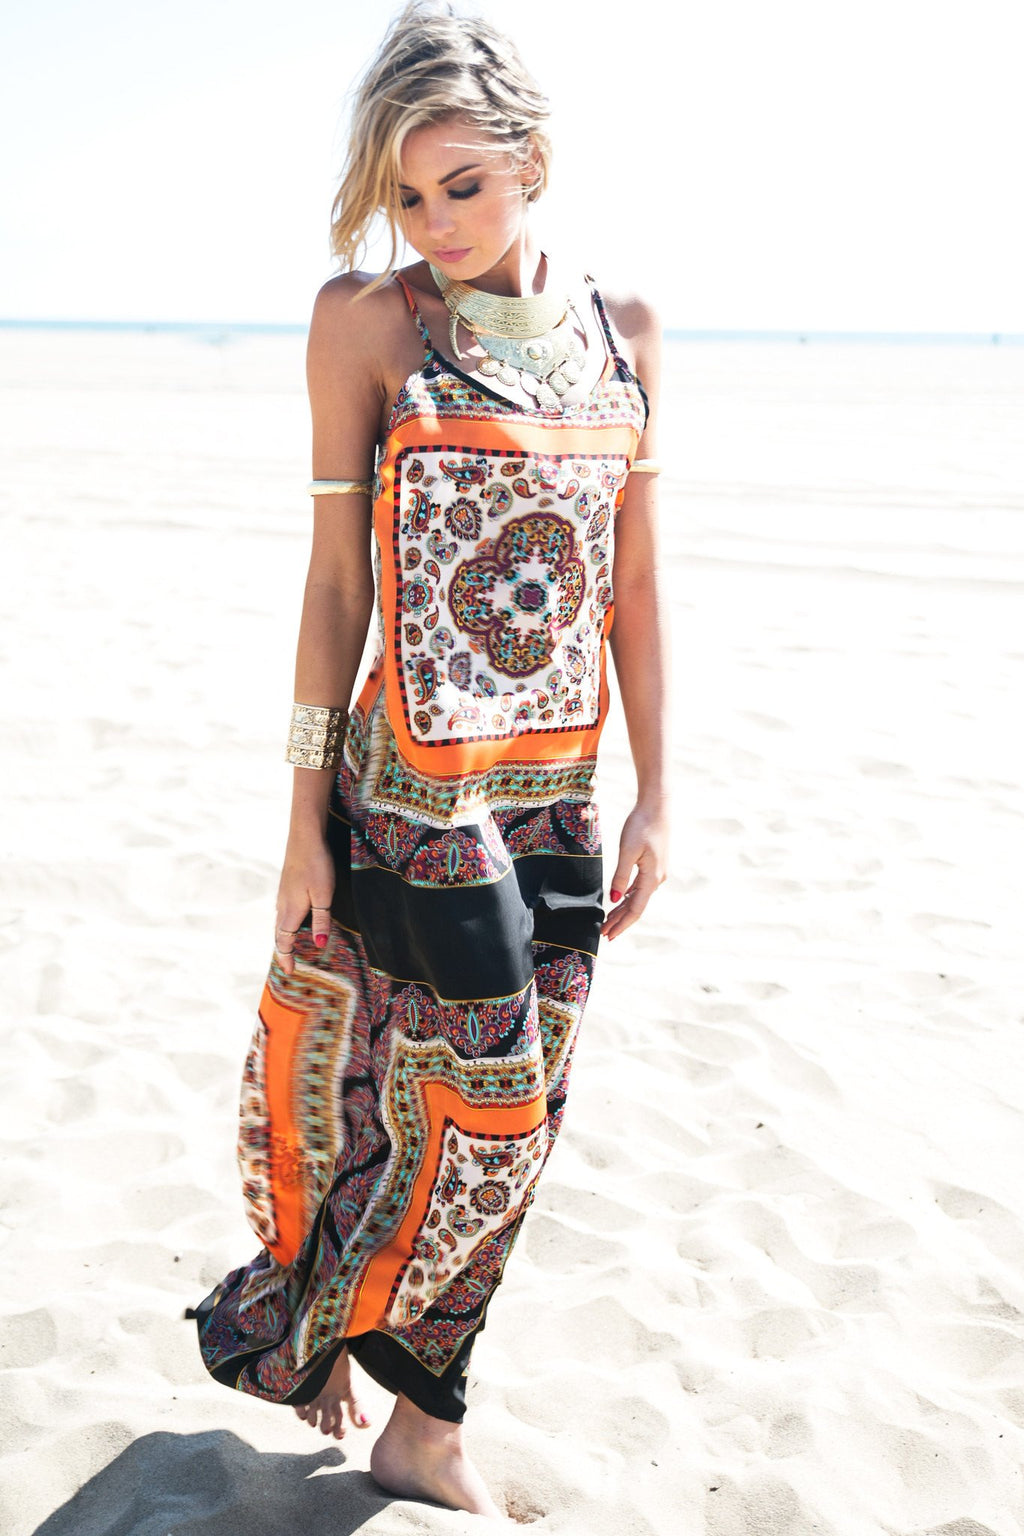 Naima Paisley Print Maxi Dress - Haute & Rebellious